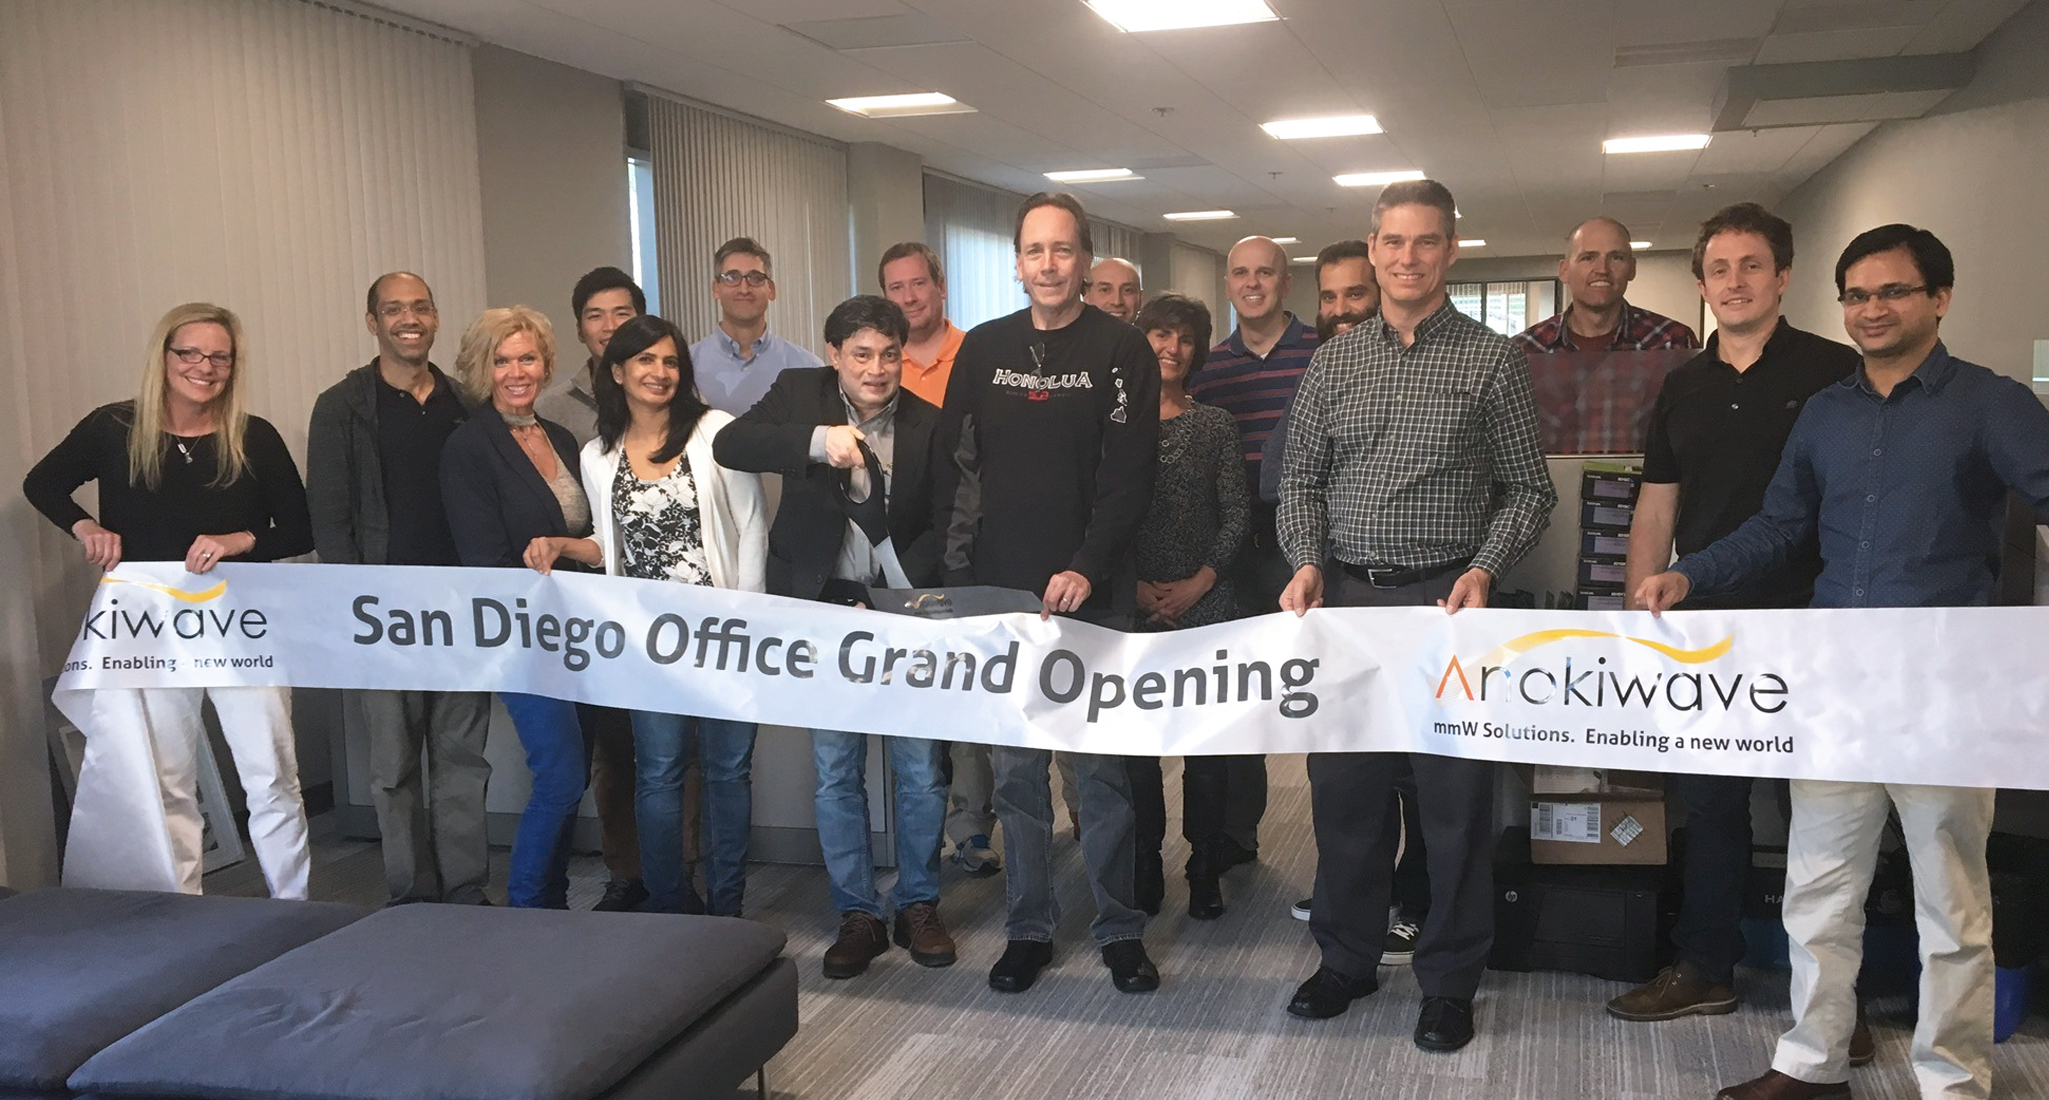 Anokiwave founders Nitin and Deepti Jain at the ribbon cutting ceremony for the new San Diego office.